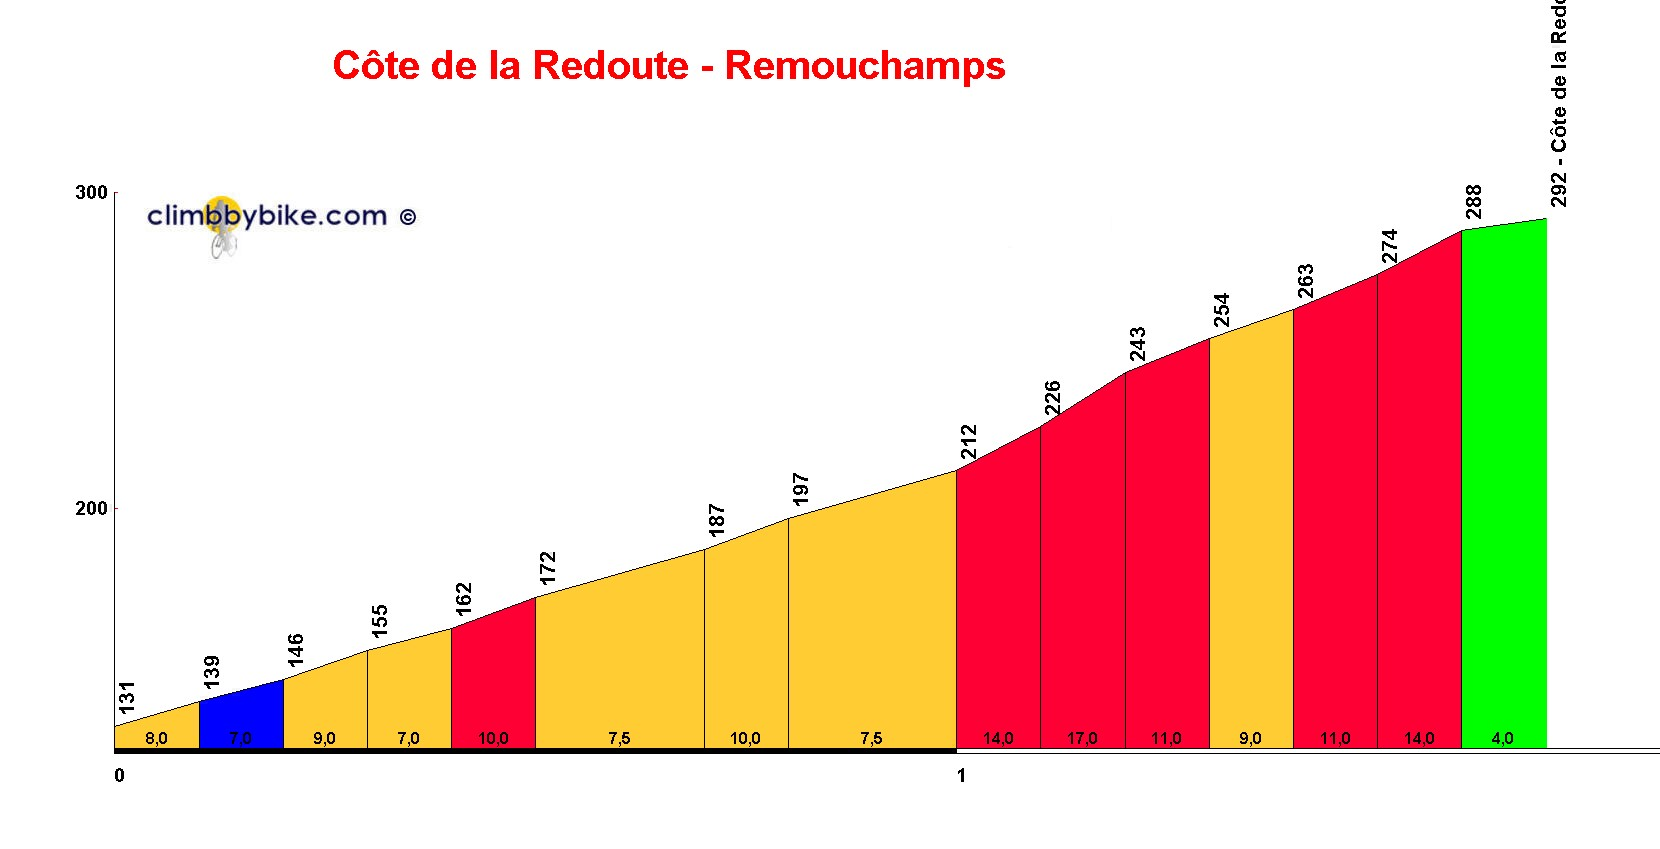 Elevation profile for Côte de la Redoute